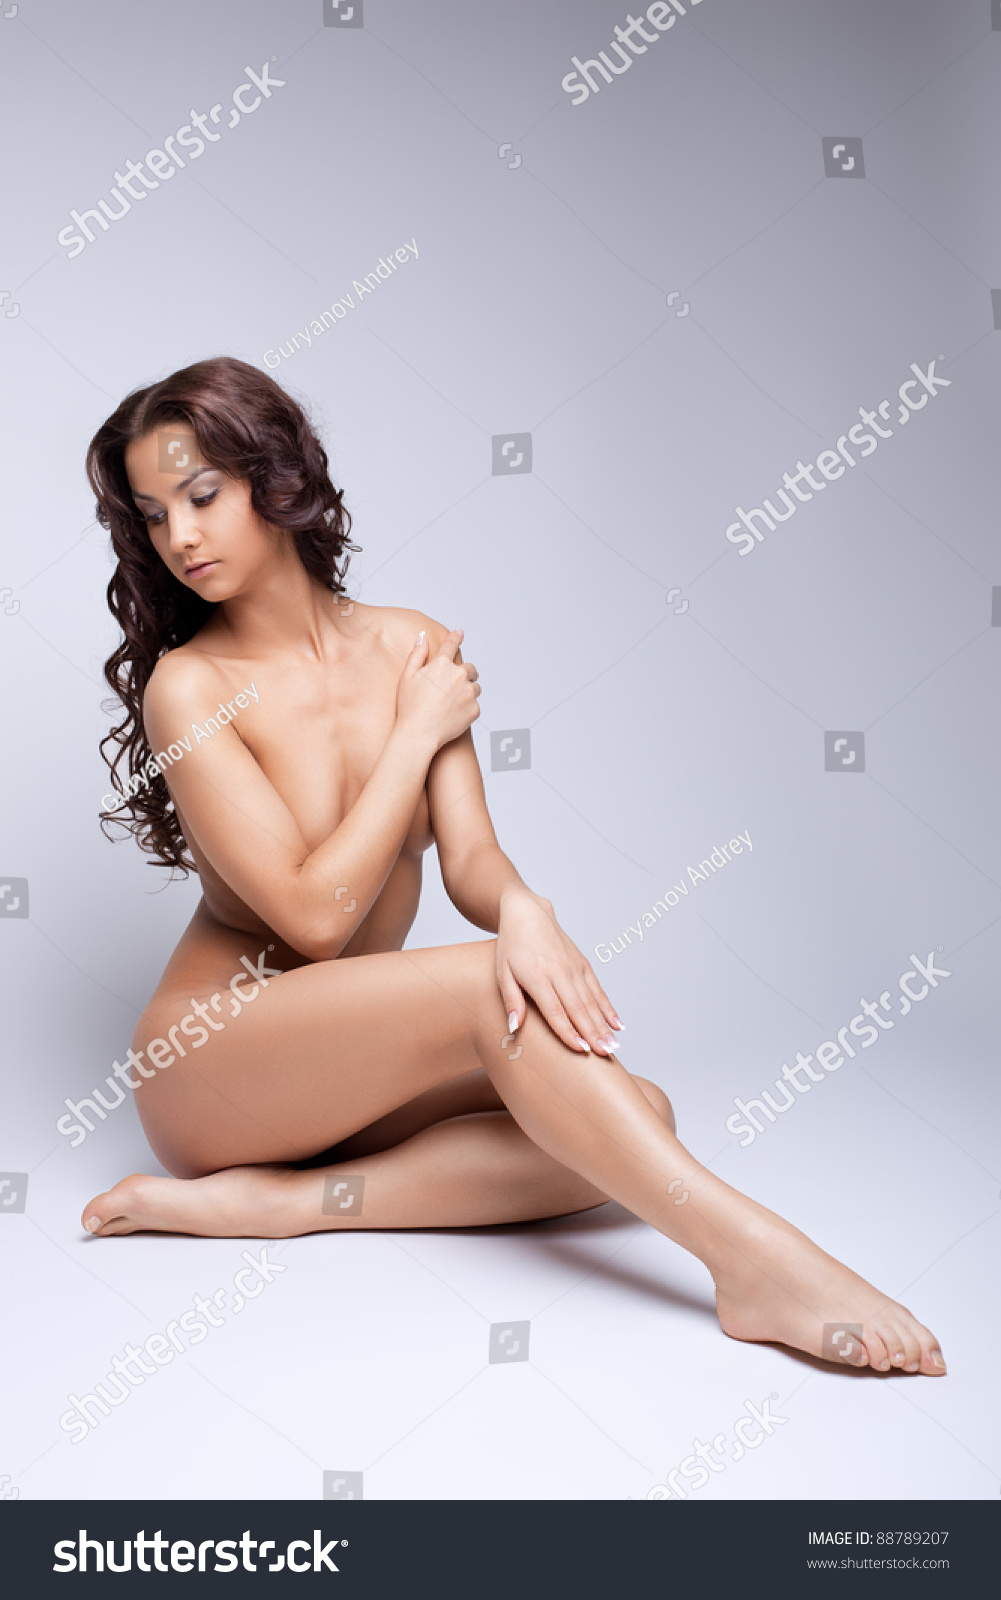 Posing Nude For Art 112